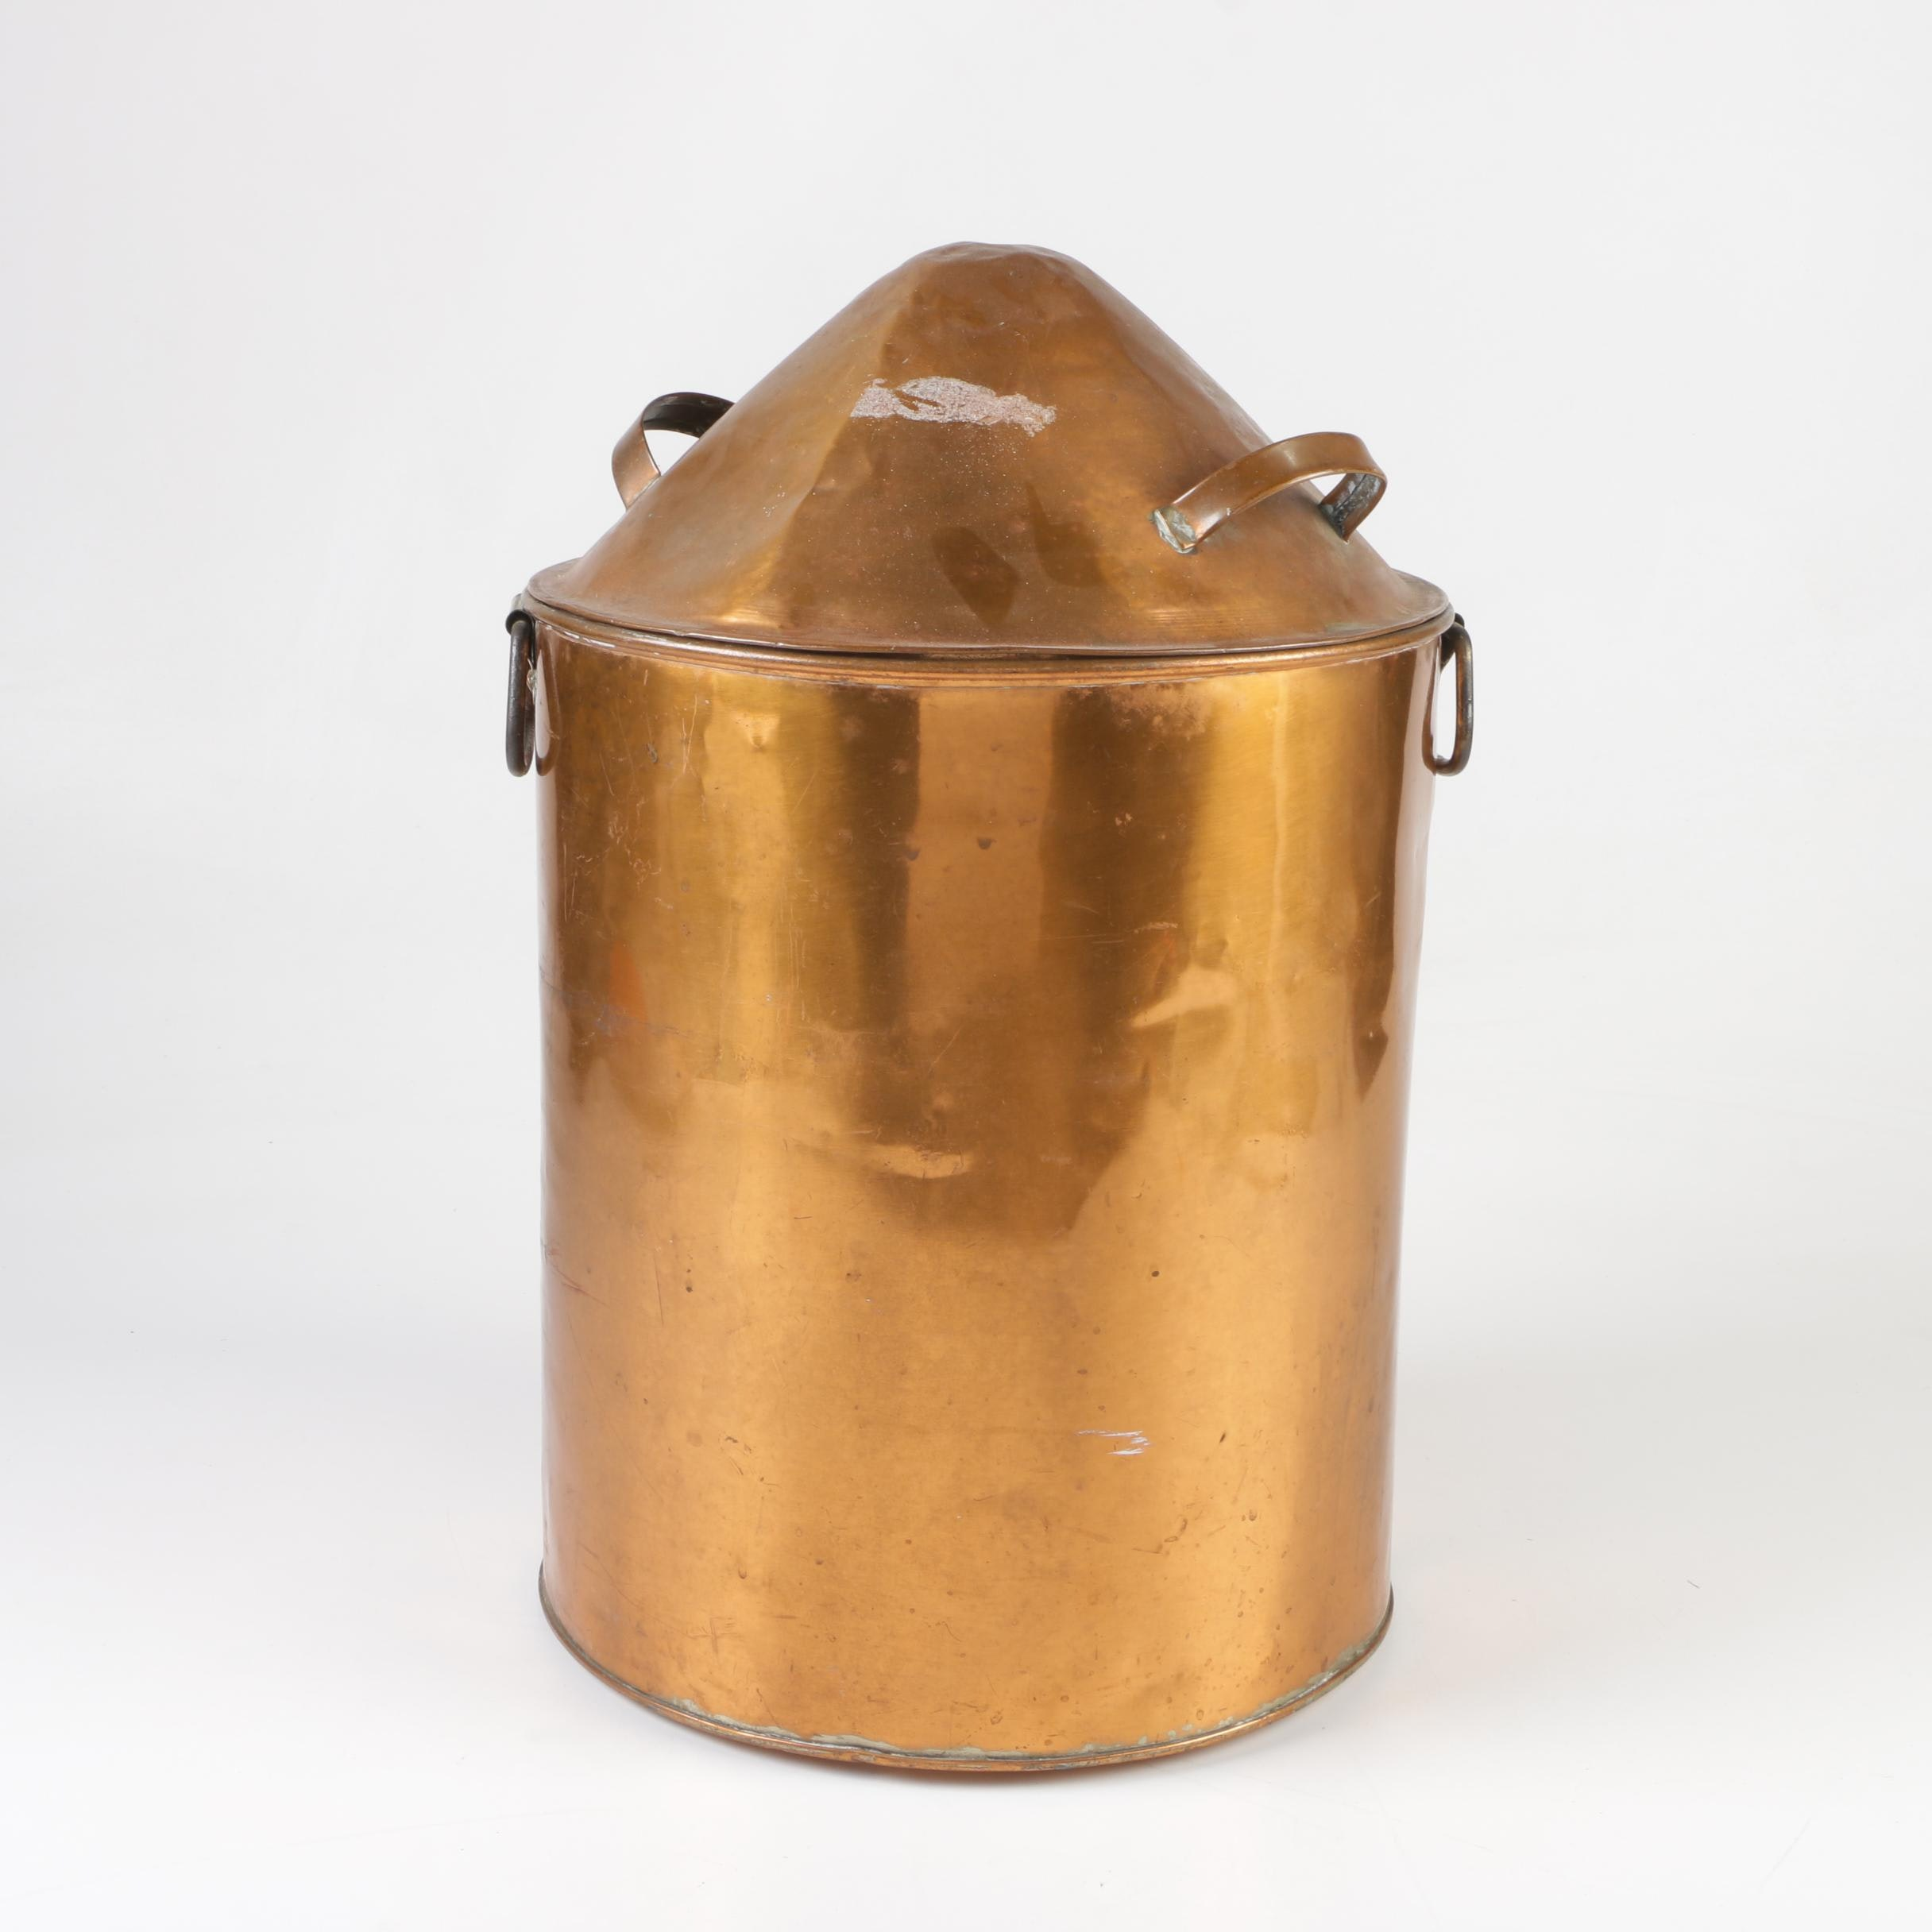 Copper Stockpot with Domical Lid, Early 20th Century